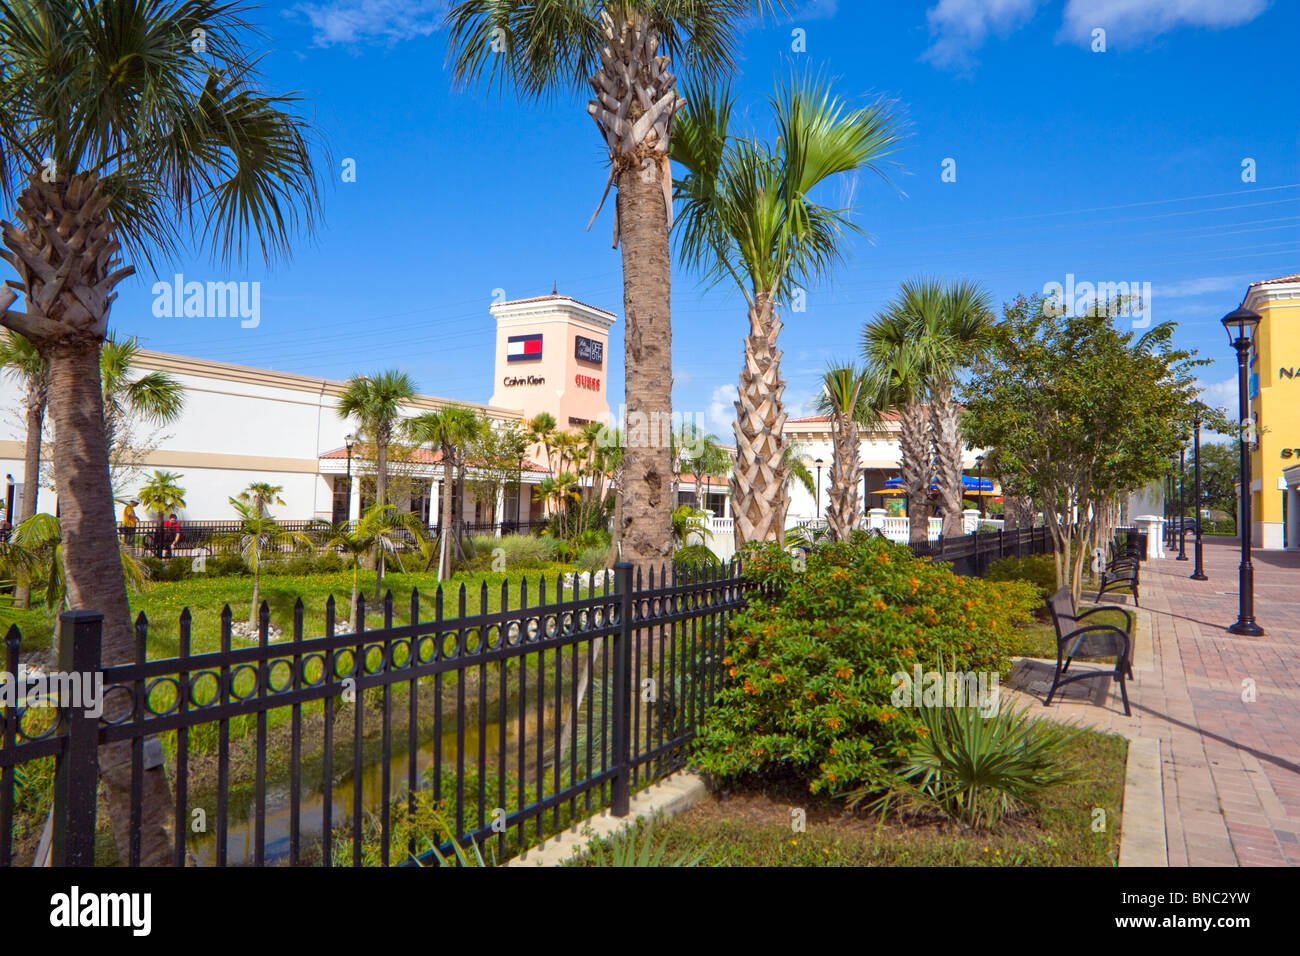 FLORIDA MALL IN EARLY MORNING malls - Stock Image